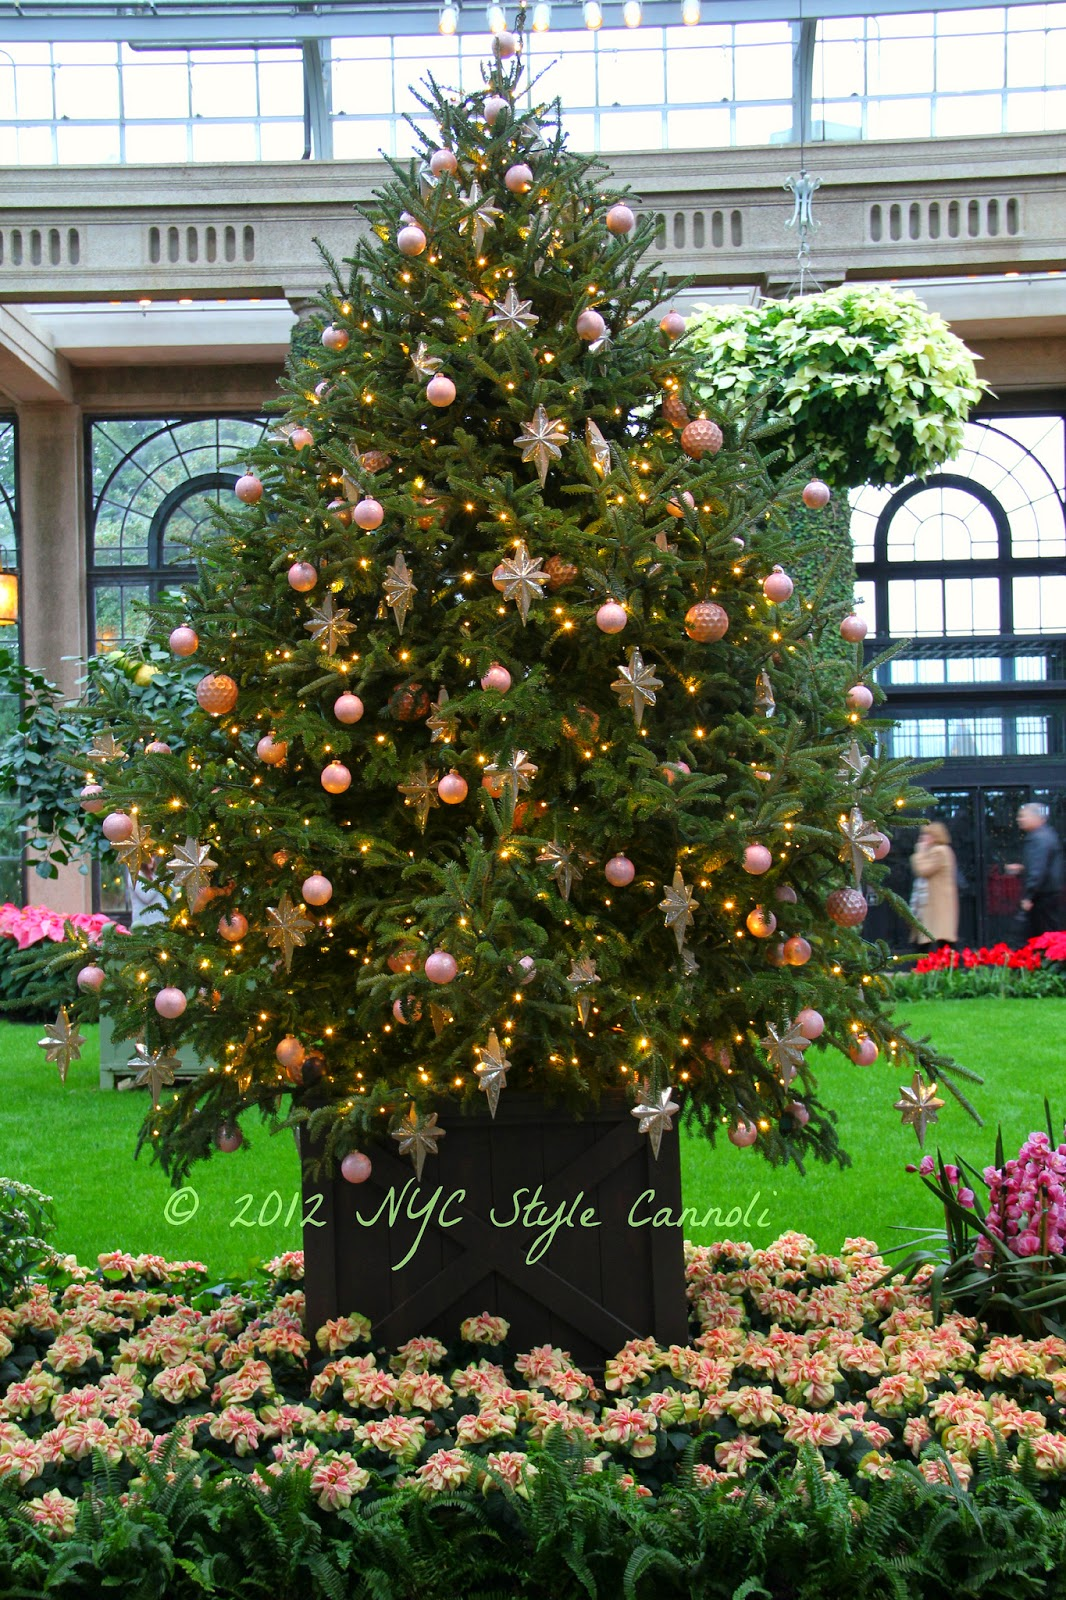 A Trip to Longwood Gardens at Christmas   NYC, Style & a little Cannoli